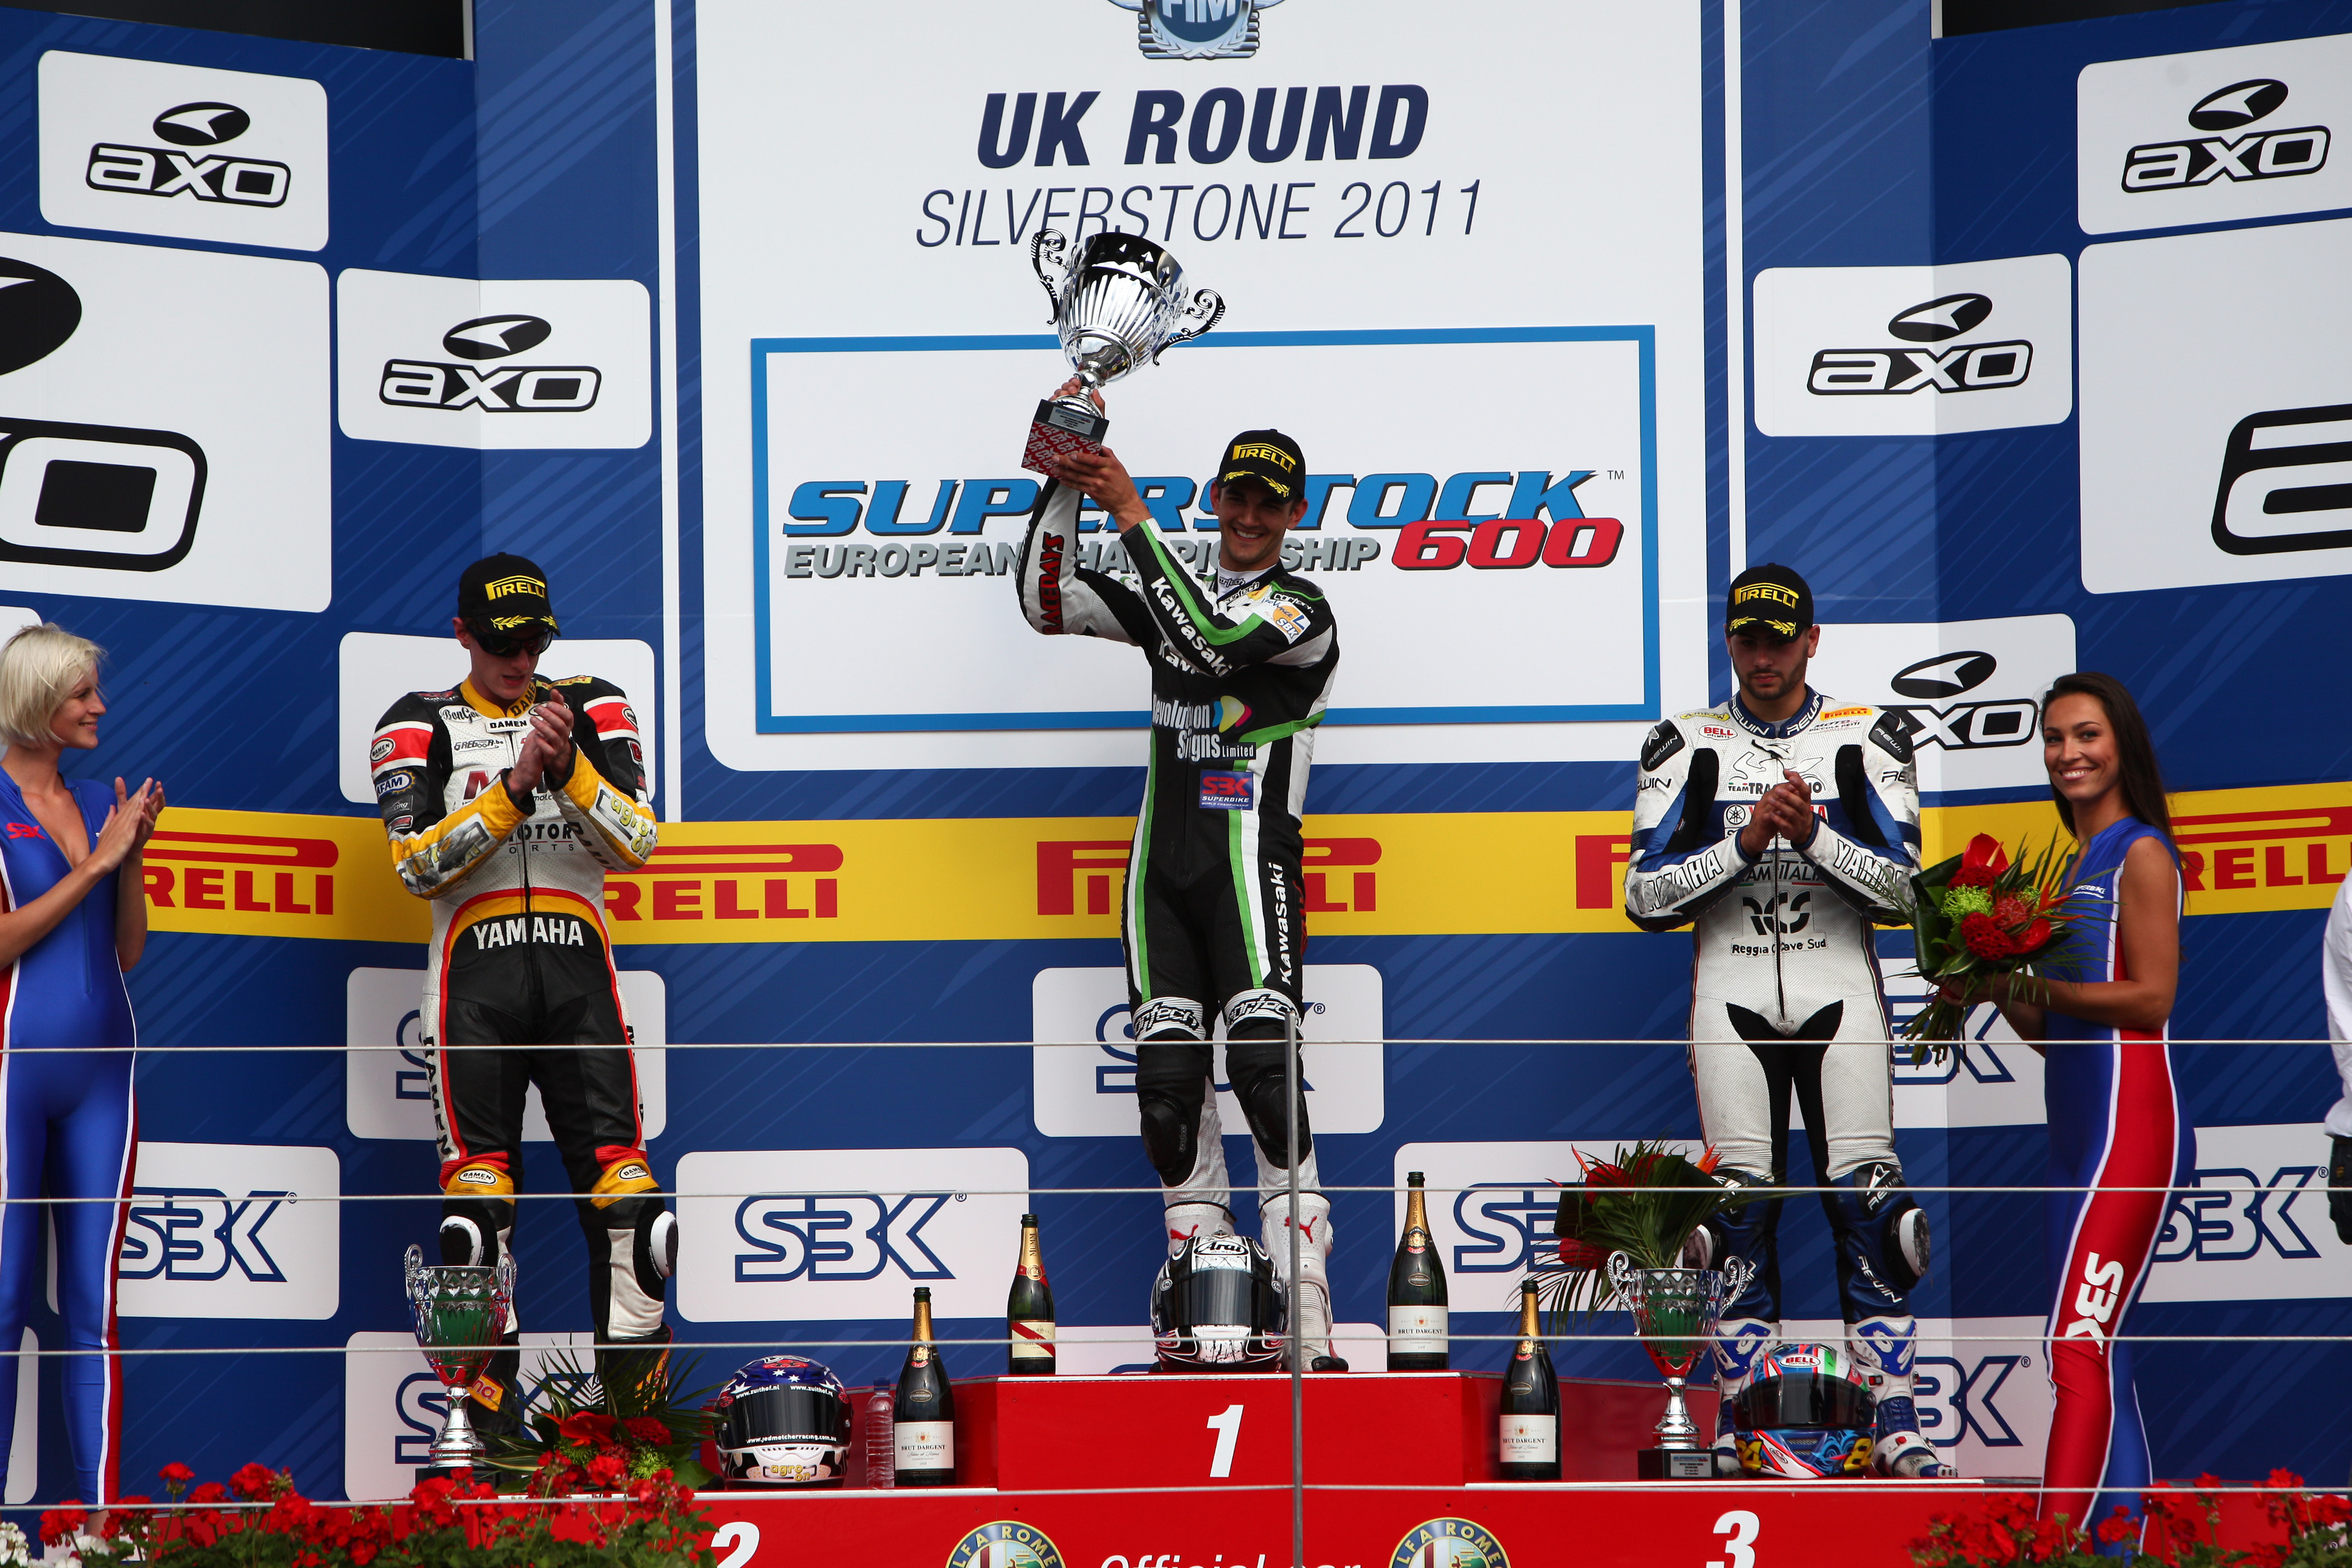 Josh Day 2011 Silverstone FIM Superstock 600 Race Winner